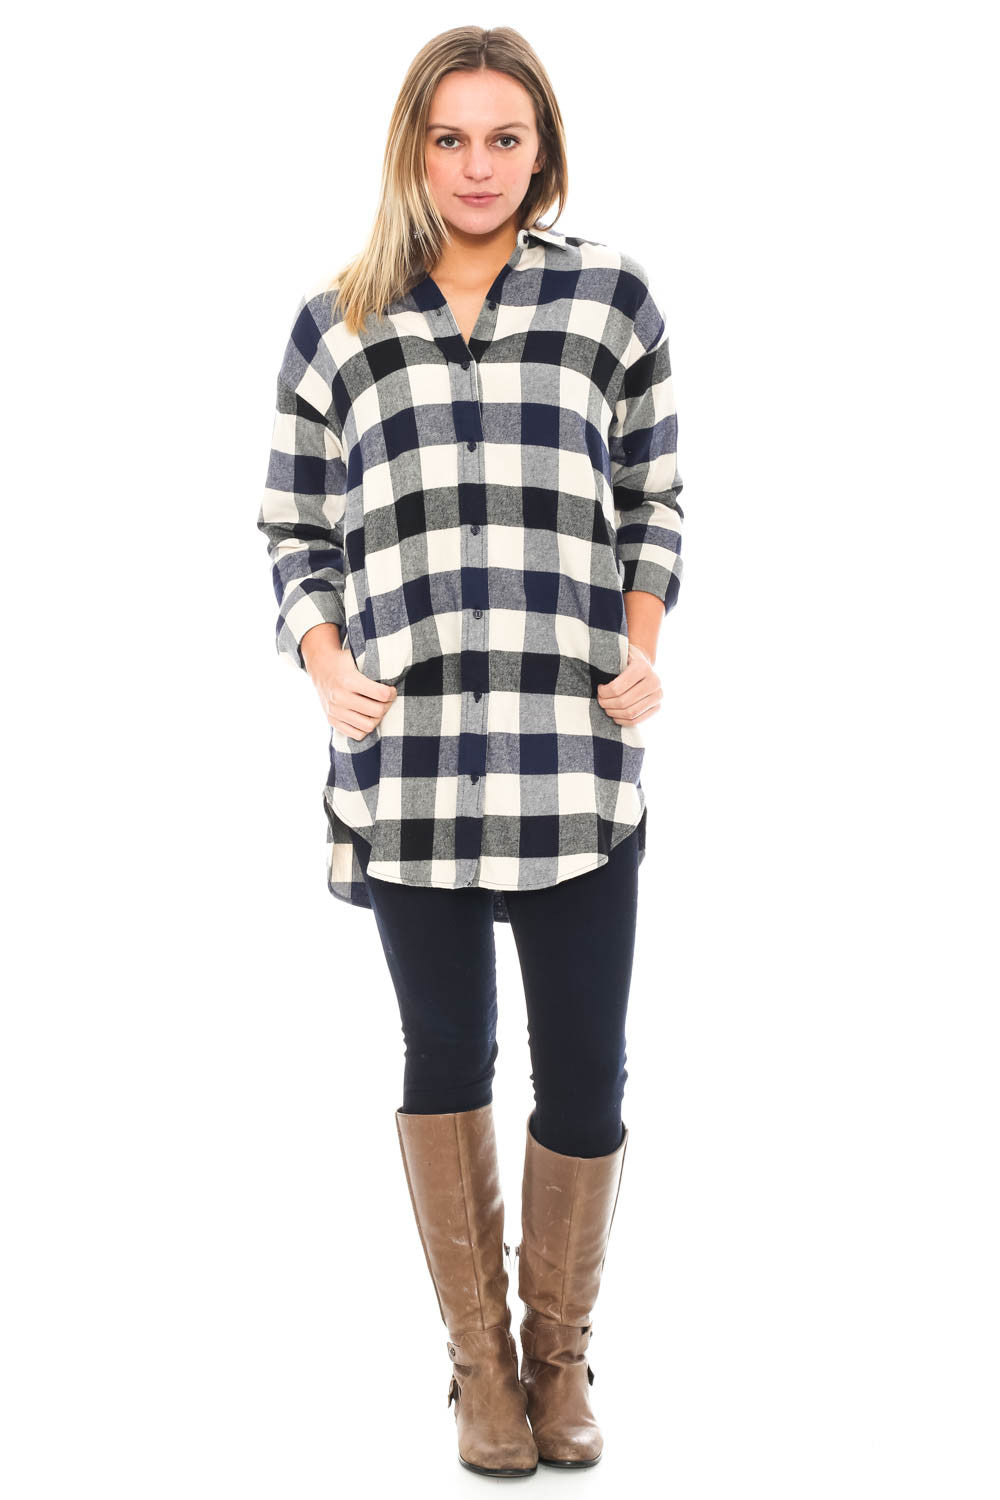 Tunic - Plaid Button Up Top